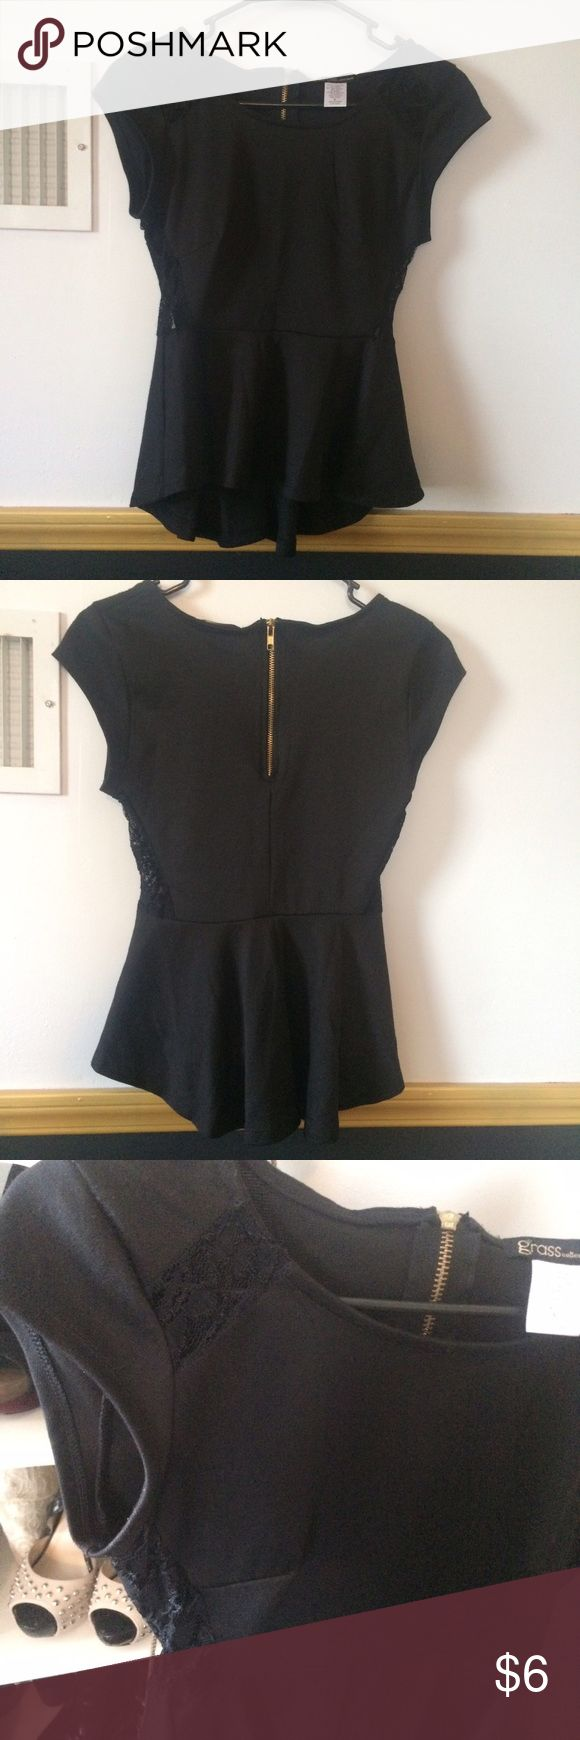 Black and lace peplum top Black peplum style with a gold zipper in the back. There is lace detailing on the sides and at the top Grass Collections Tops Blouses